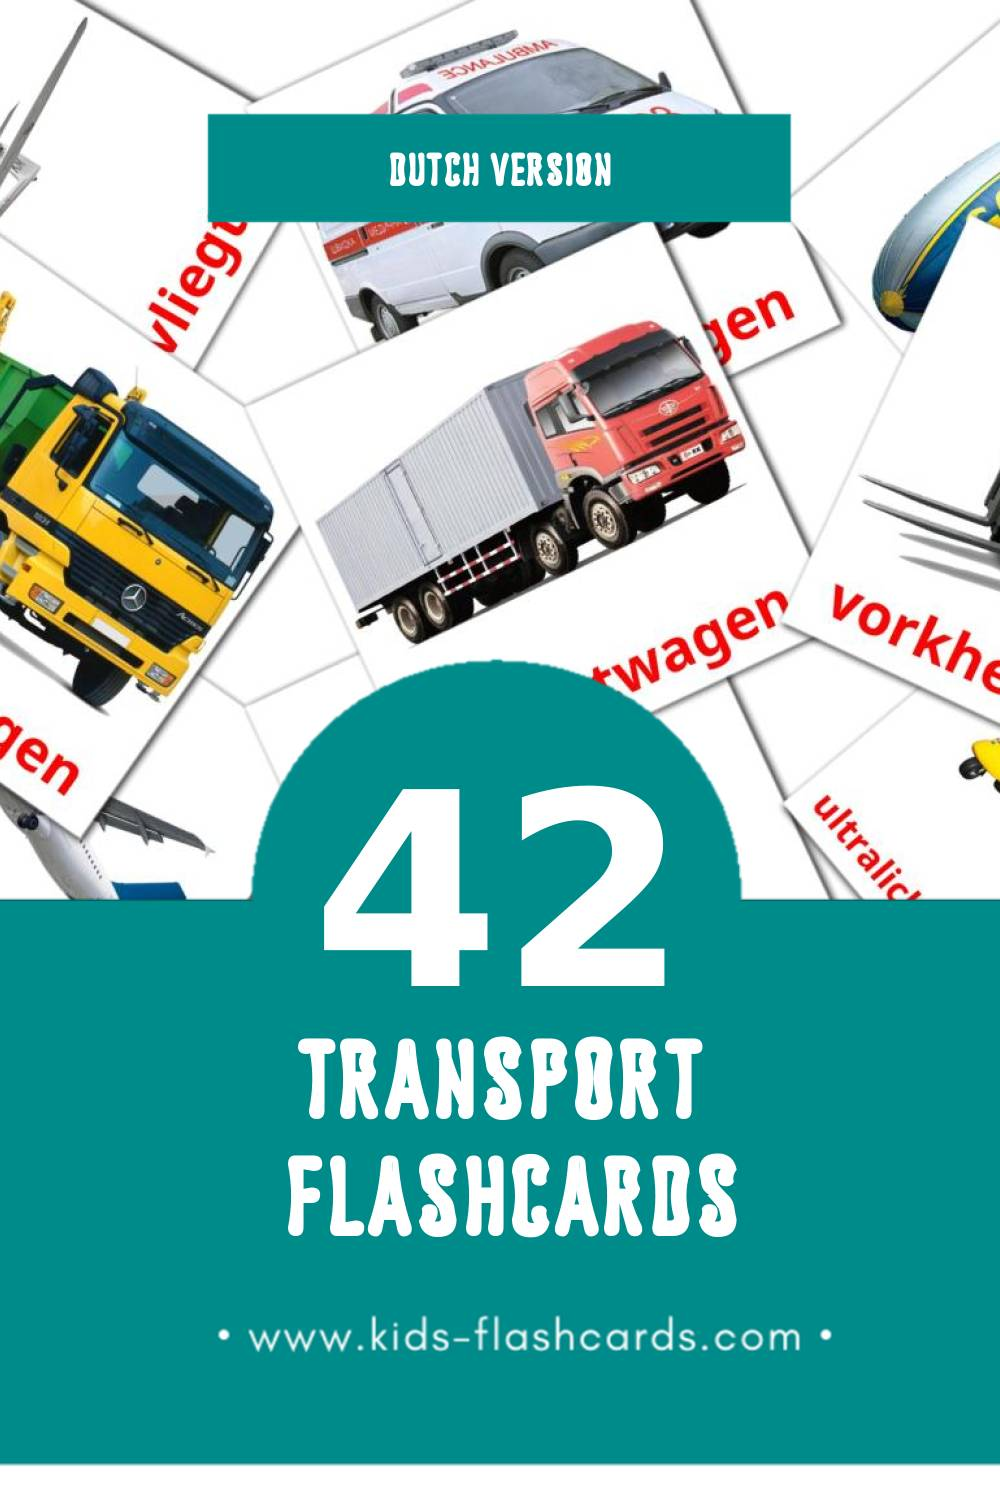 Visual Vervoer Flashcards for Toddlers (42 cards in Dutch)